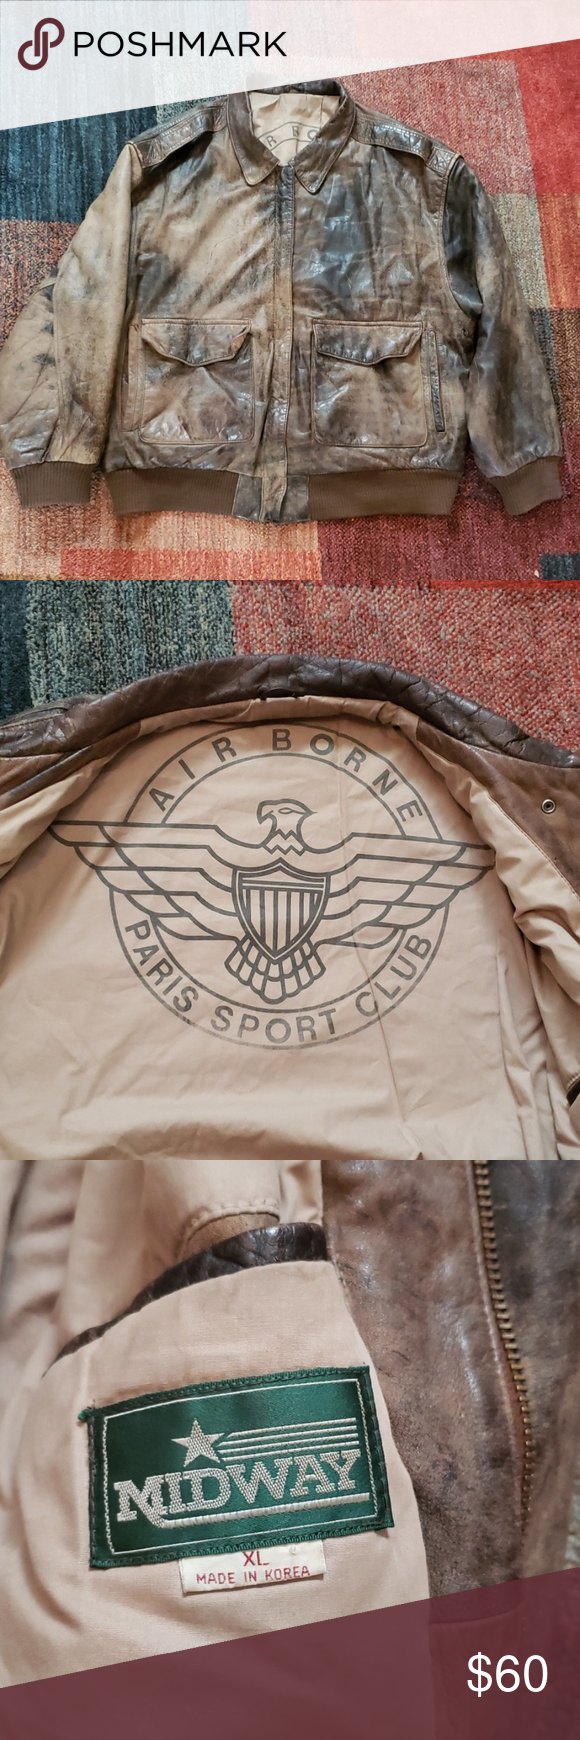 Midway Airborne Paris Sport Club Leather Jacket Xl Brown Distressed Looking Leather Bomber Jacket From Airb Leather Bomber Jacket Leather Jacket Leather Bomber [ 1740 x 580 Pixel ]